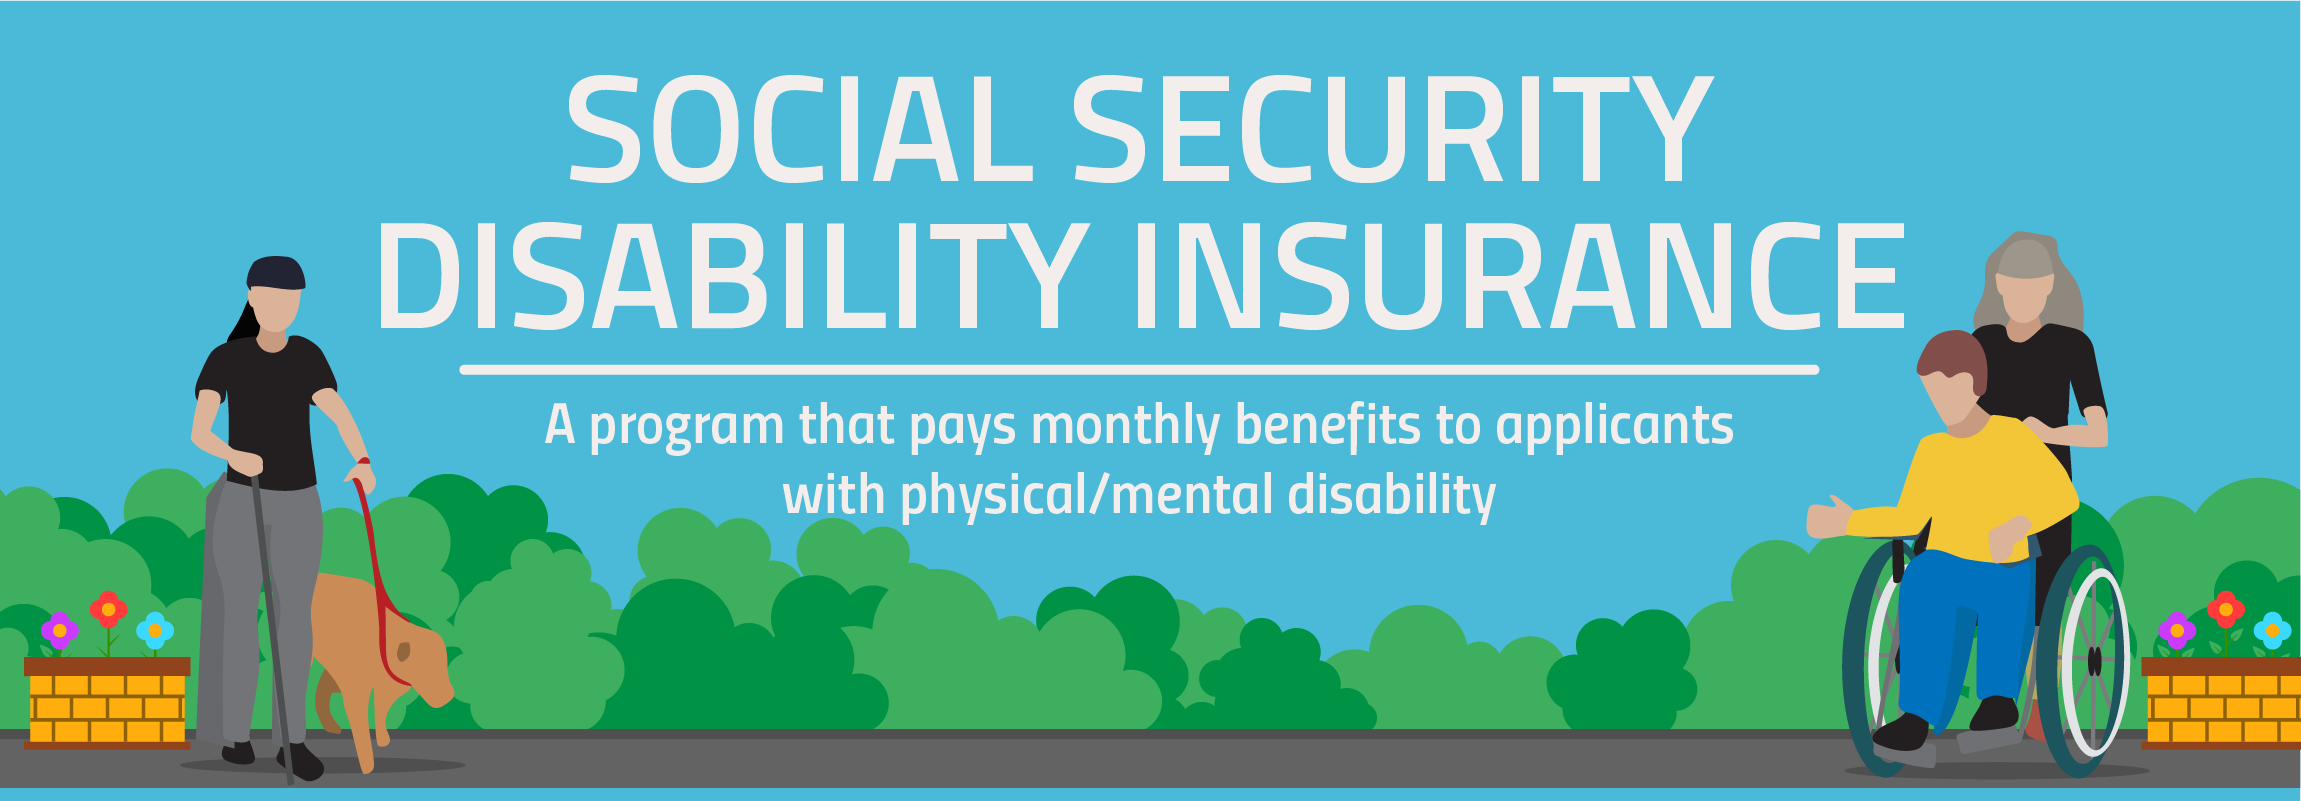 Social Security Disability Insurance Ssdi Kindly